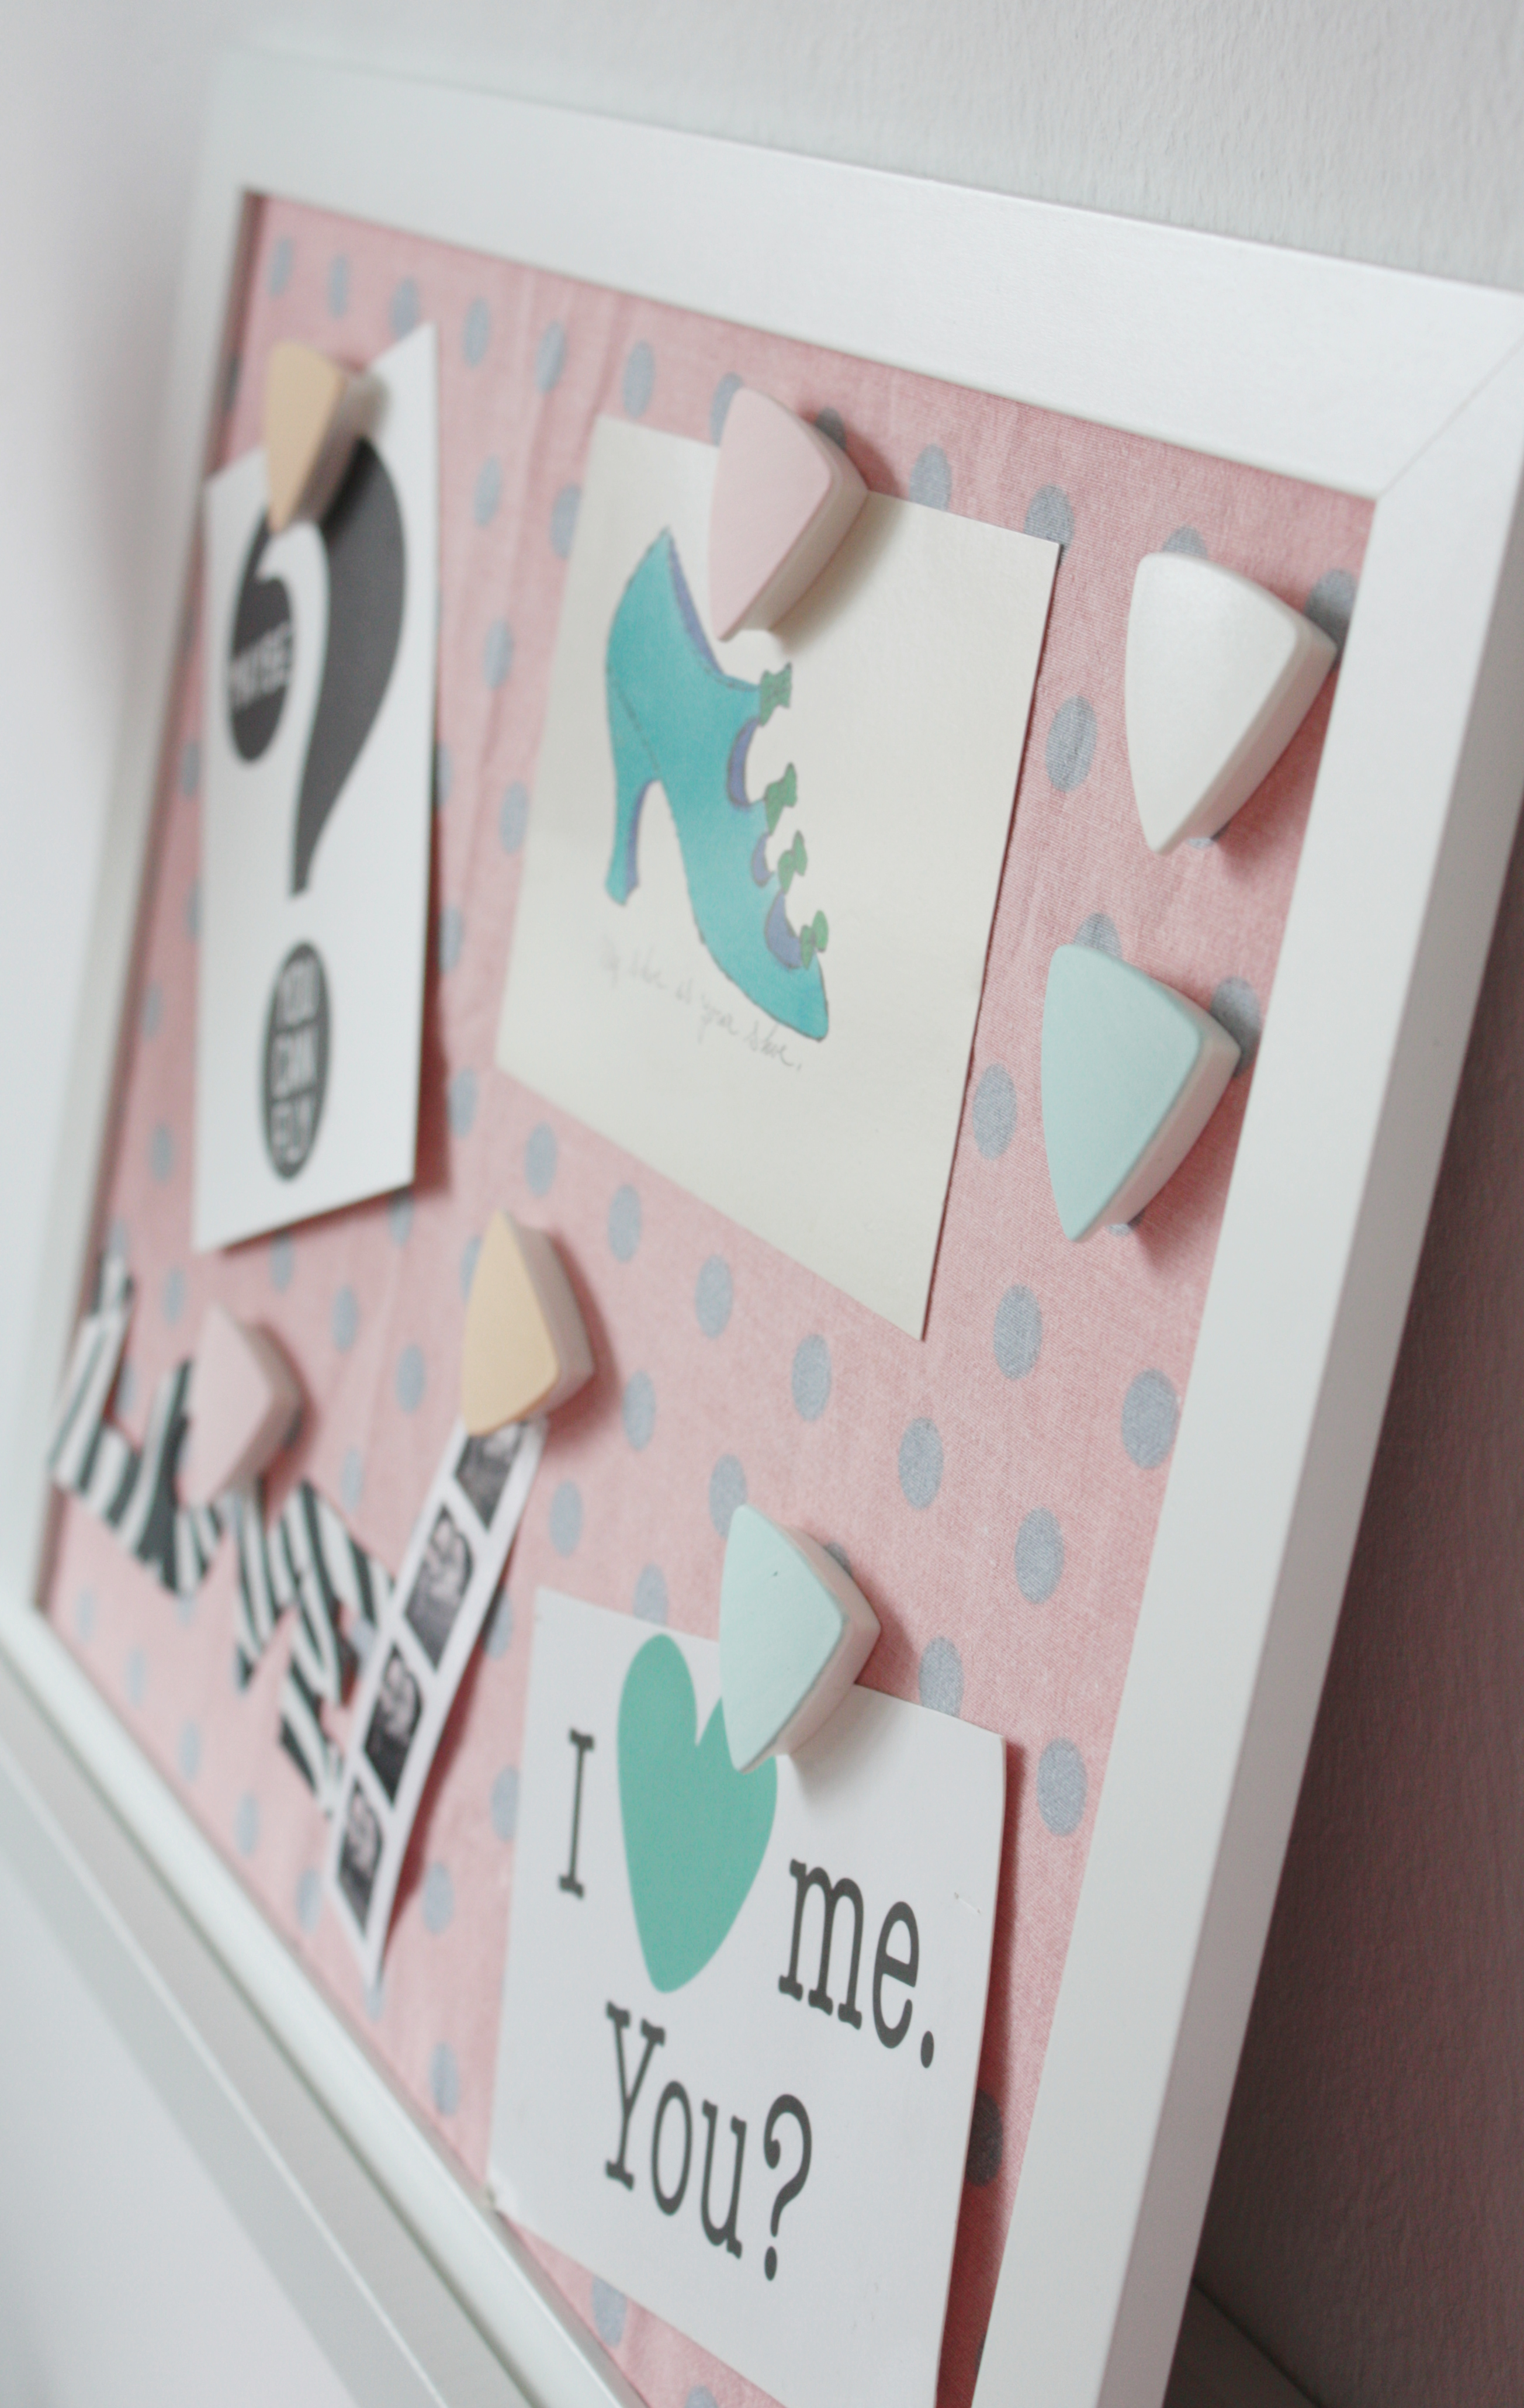 Diy magnetisches memoboard pastell magnete rosy - Memoboard basteln ...